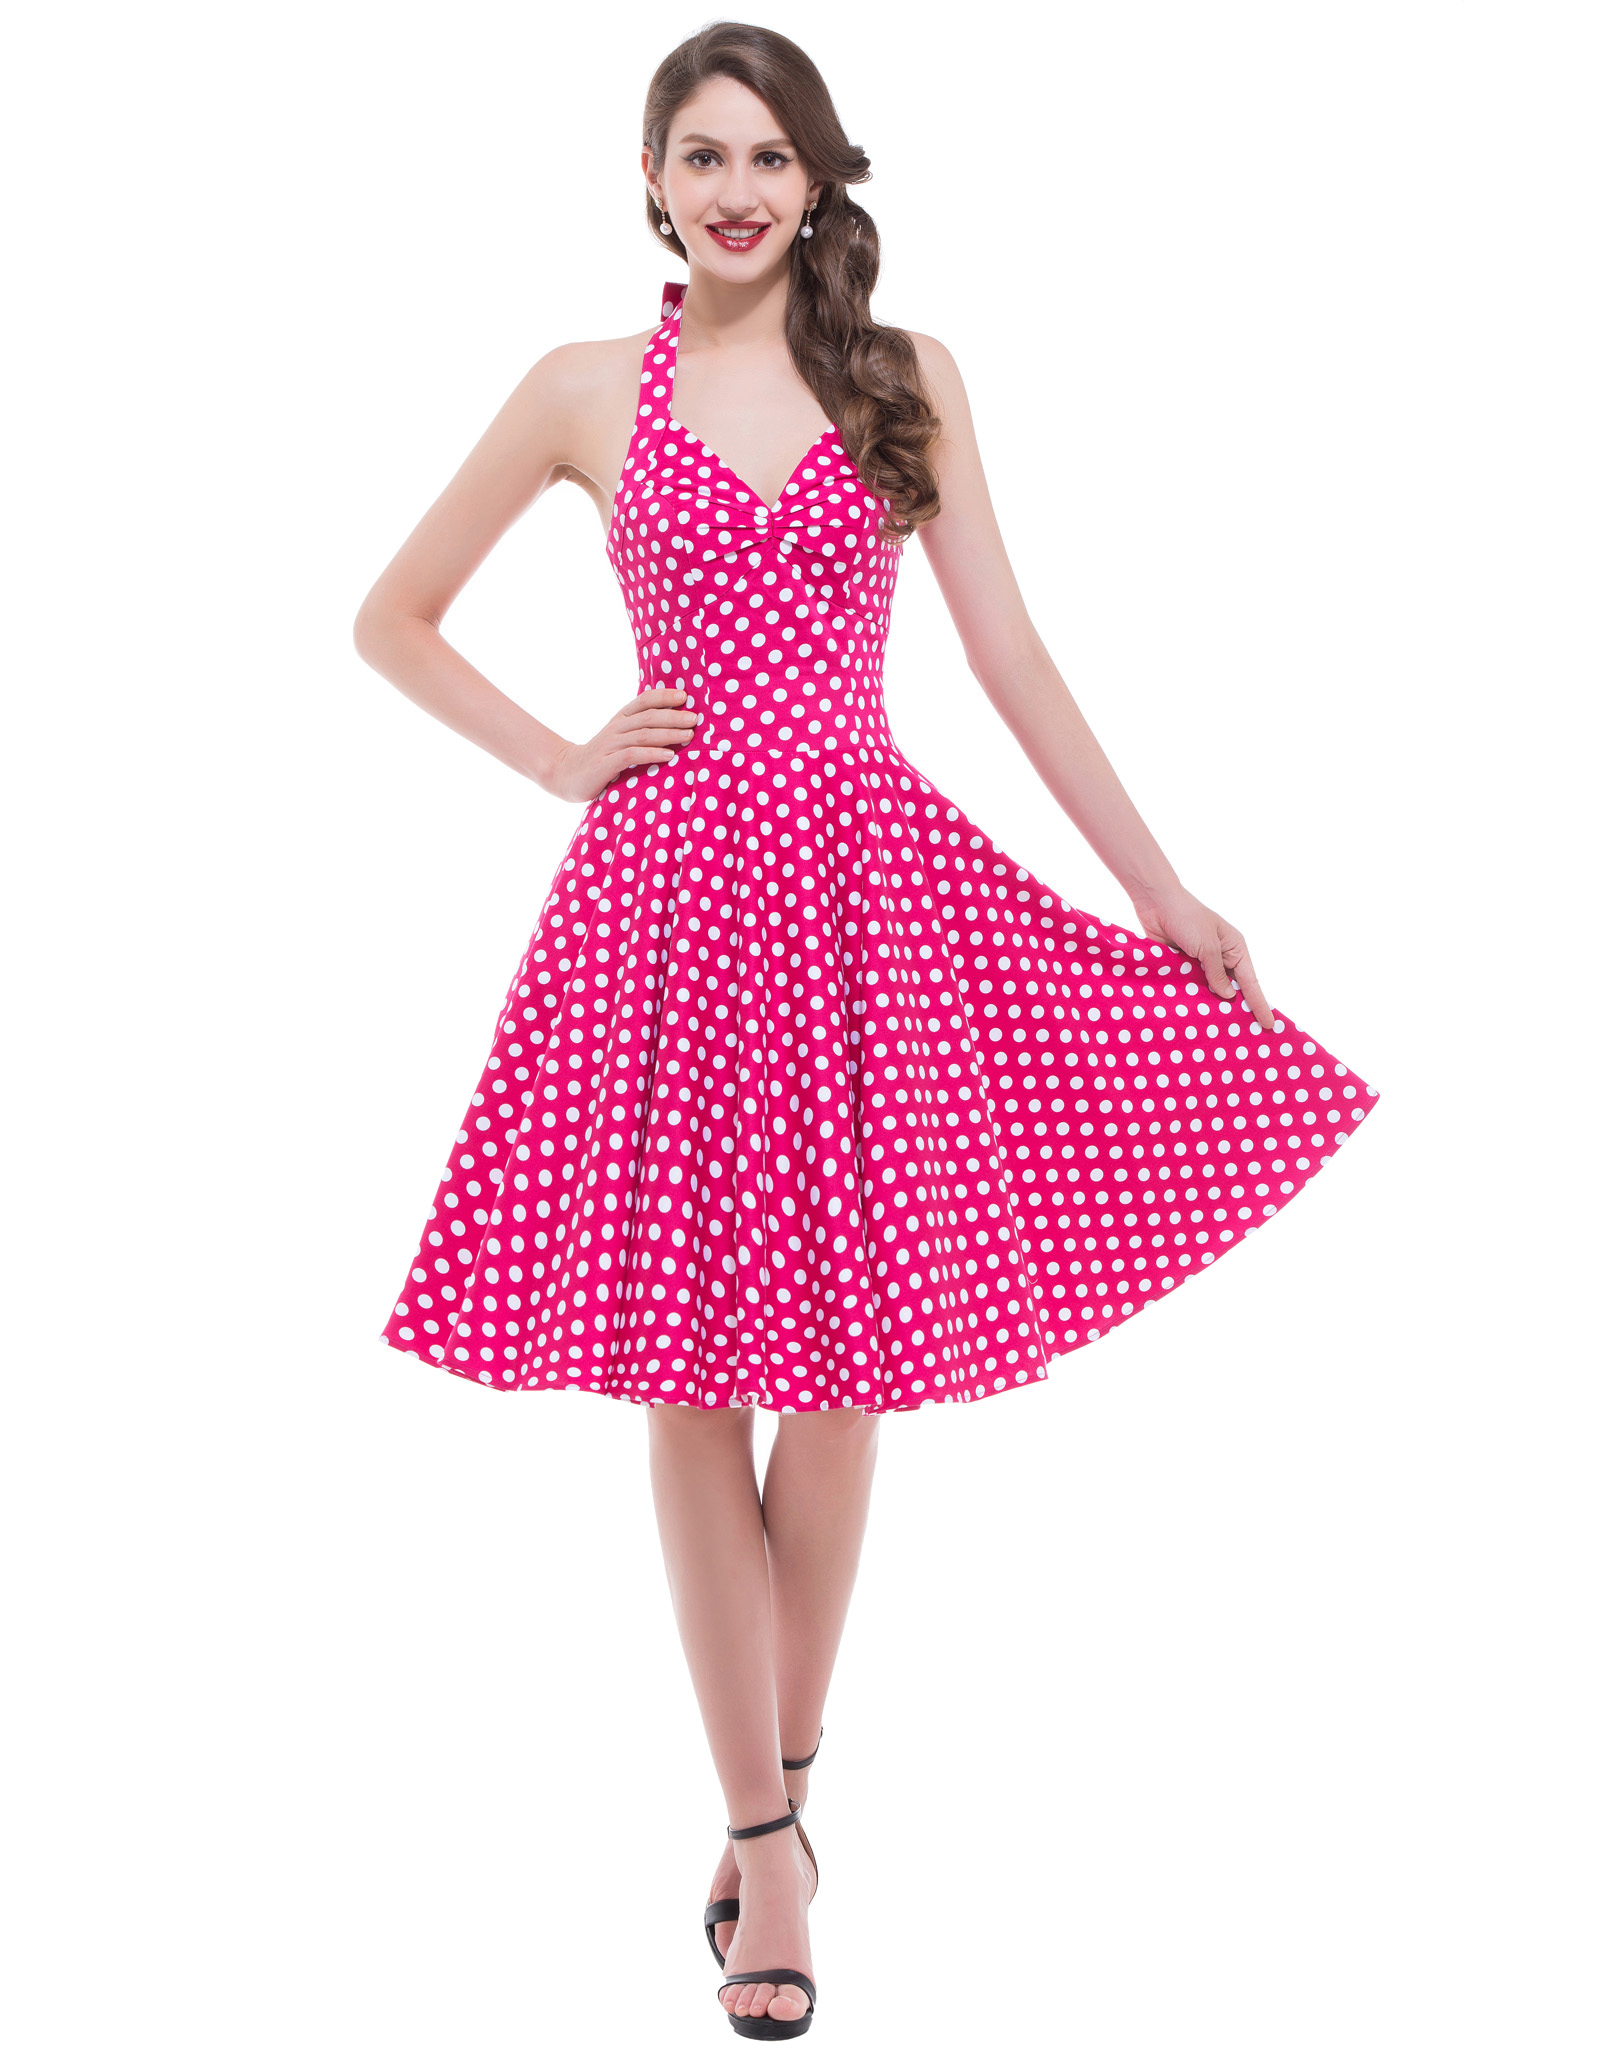 VINTAGE Style Polka Dots Halter Swing 50s pinup Prom HOUSEWIFE Dress